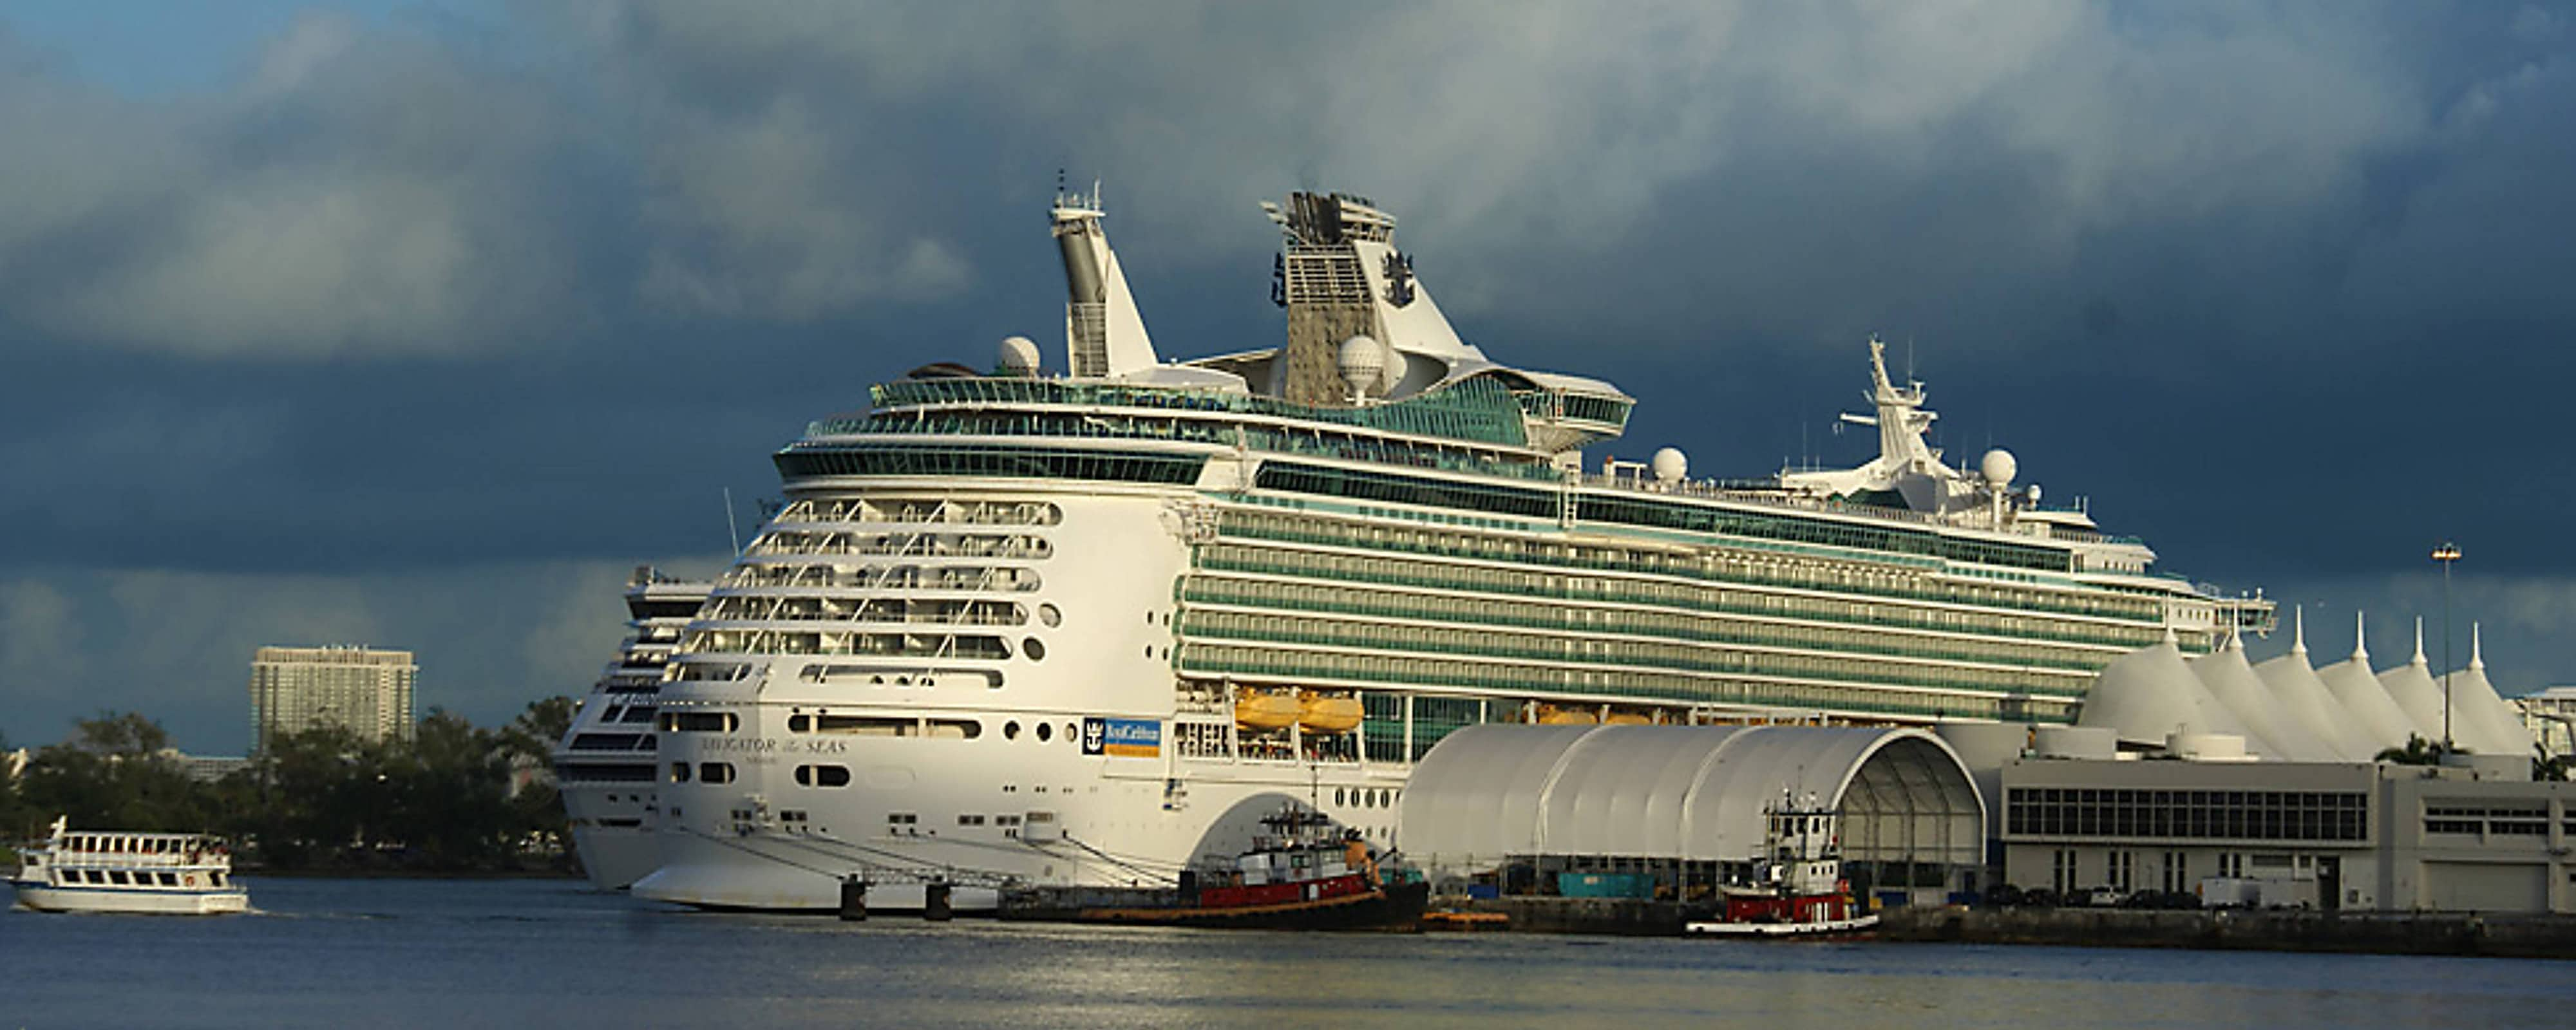 Hotels In Downtown Miami Near Cruise Port